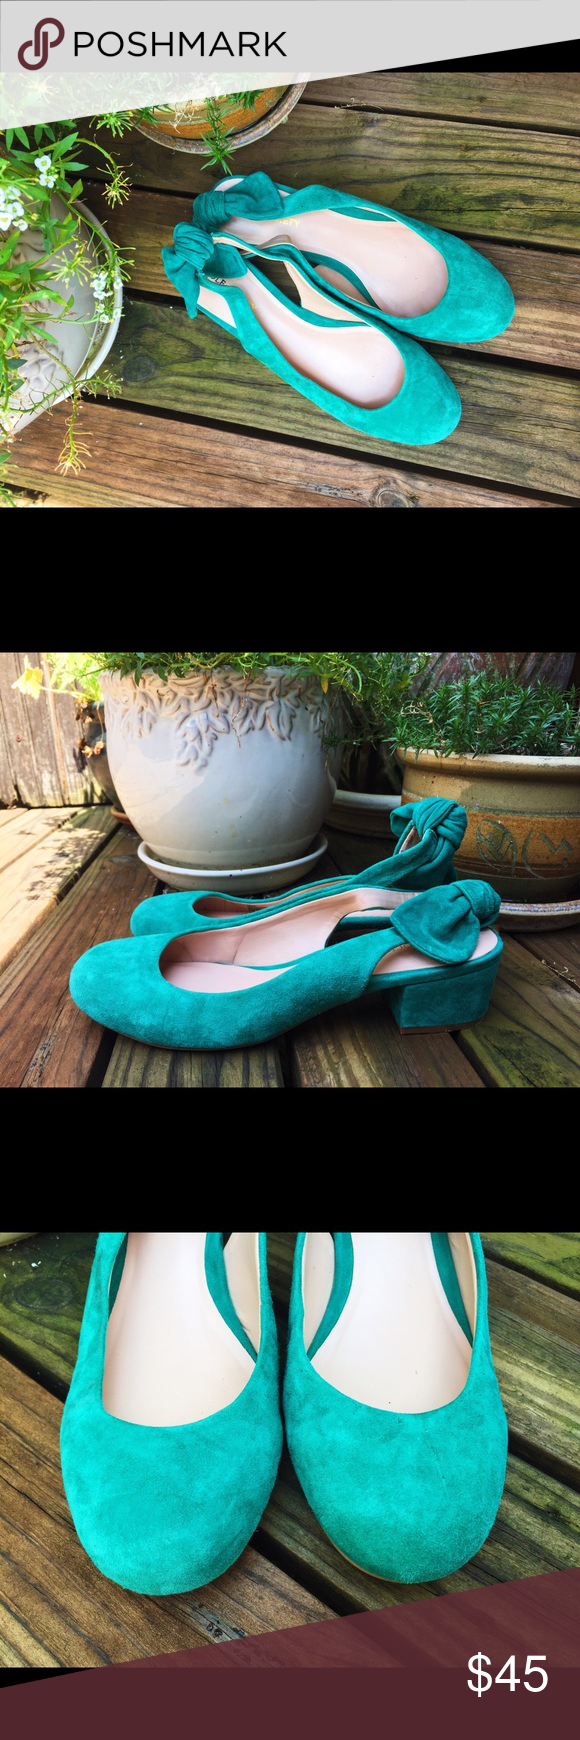 Sole Society Suede Loafers 100% Suede seafoam green loafers with chunky heel from Sole Society! Bow detail on strap in the back. Lightly worn! Sole Society Shoes Flats & Loafers